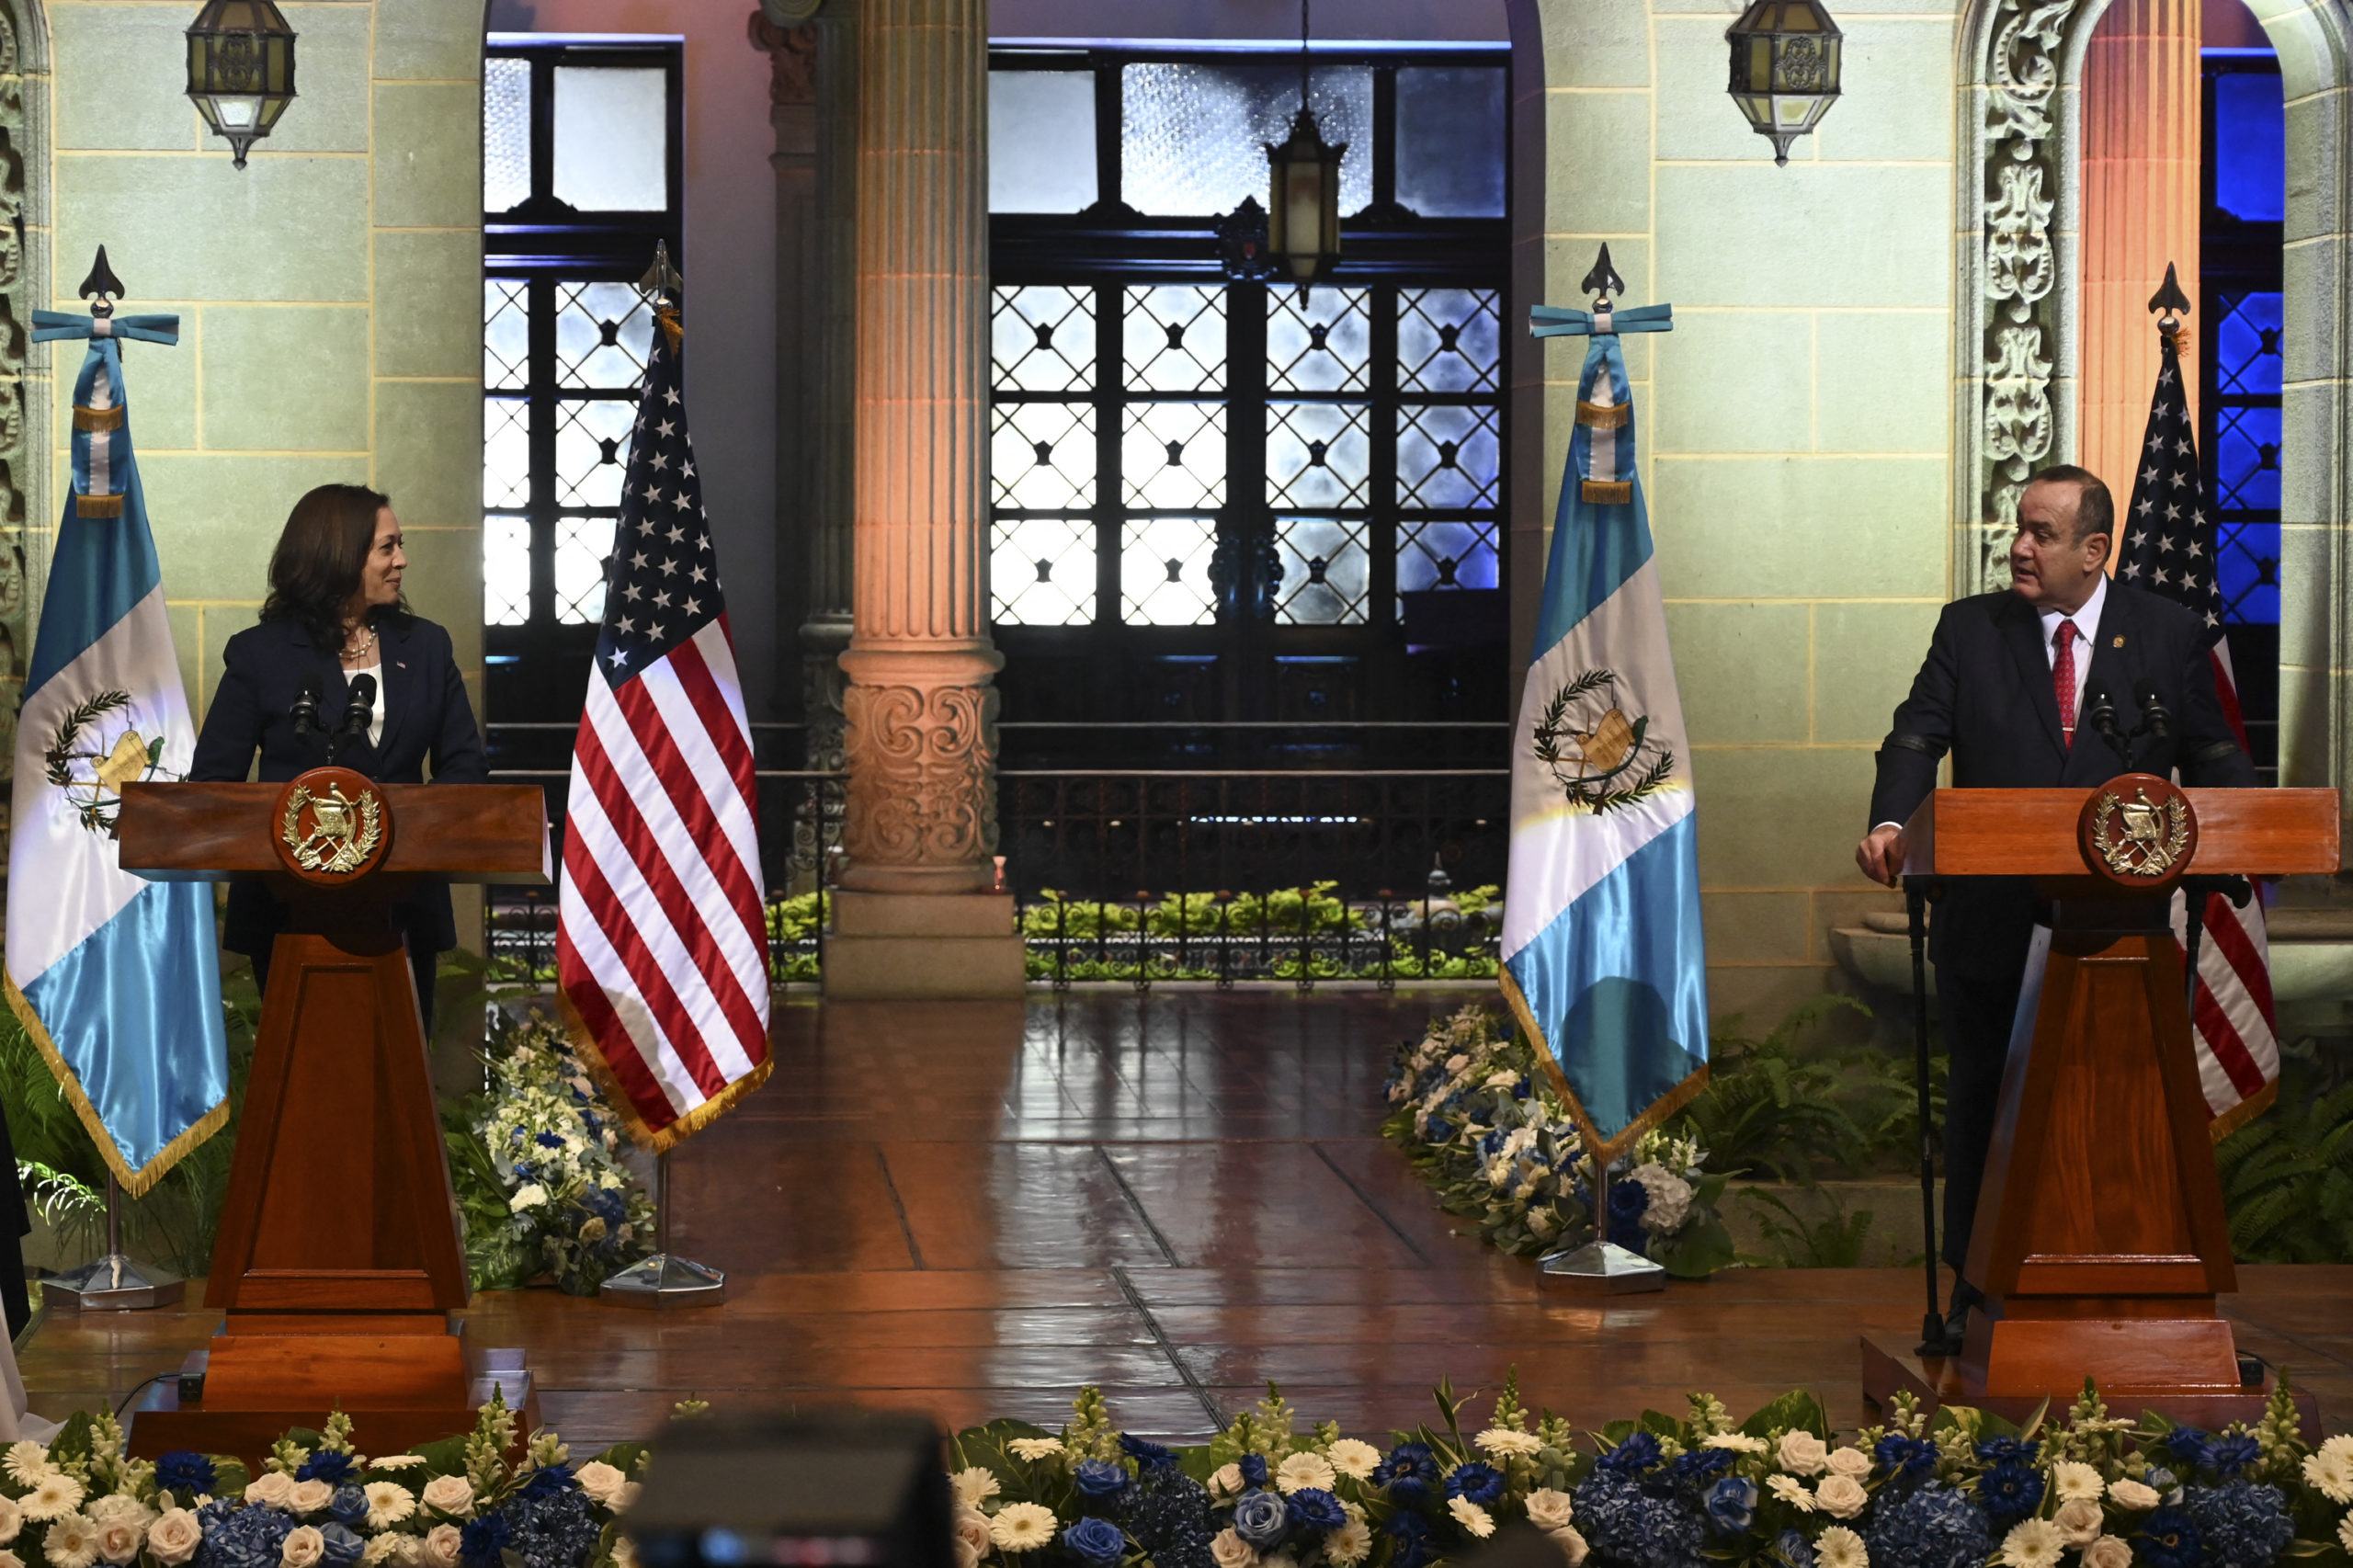 """US Vice-President Kamala Harris (L) and Guatemalan President Alejandro Giammattei deliver a joint press conference at the Culture Palace in Guatemala City on June 7, 2021. - Harris arrived in Guatemala Sunday, bringing a message of """"hope"""" to a region hammered by Covid-19 and which is the source of most of the undocumented migrants seeking entry to the United States. (Photo by Johan ORDONEZ / AFP) (Photo by JOHAN ORDONEZ/AFP via Getty Images)"""